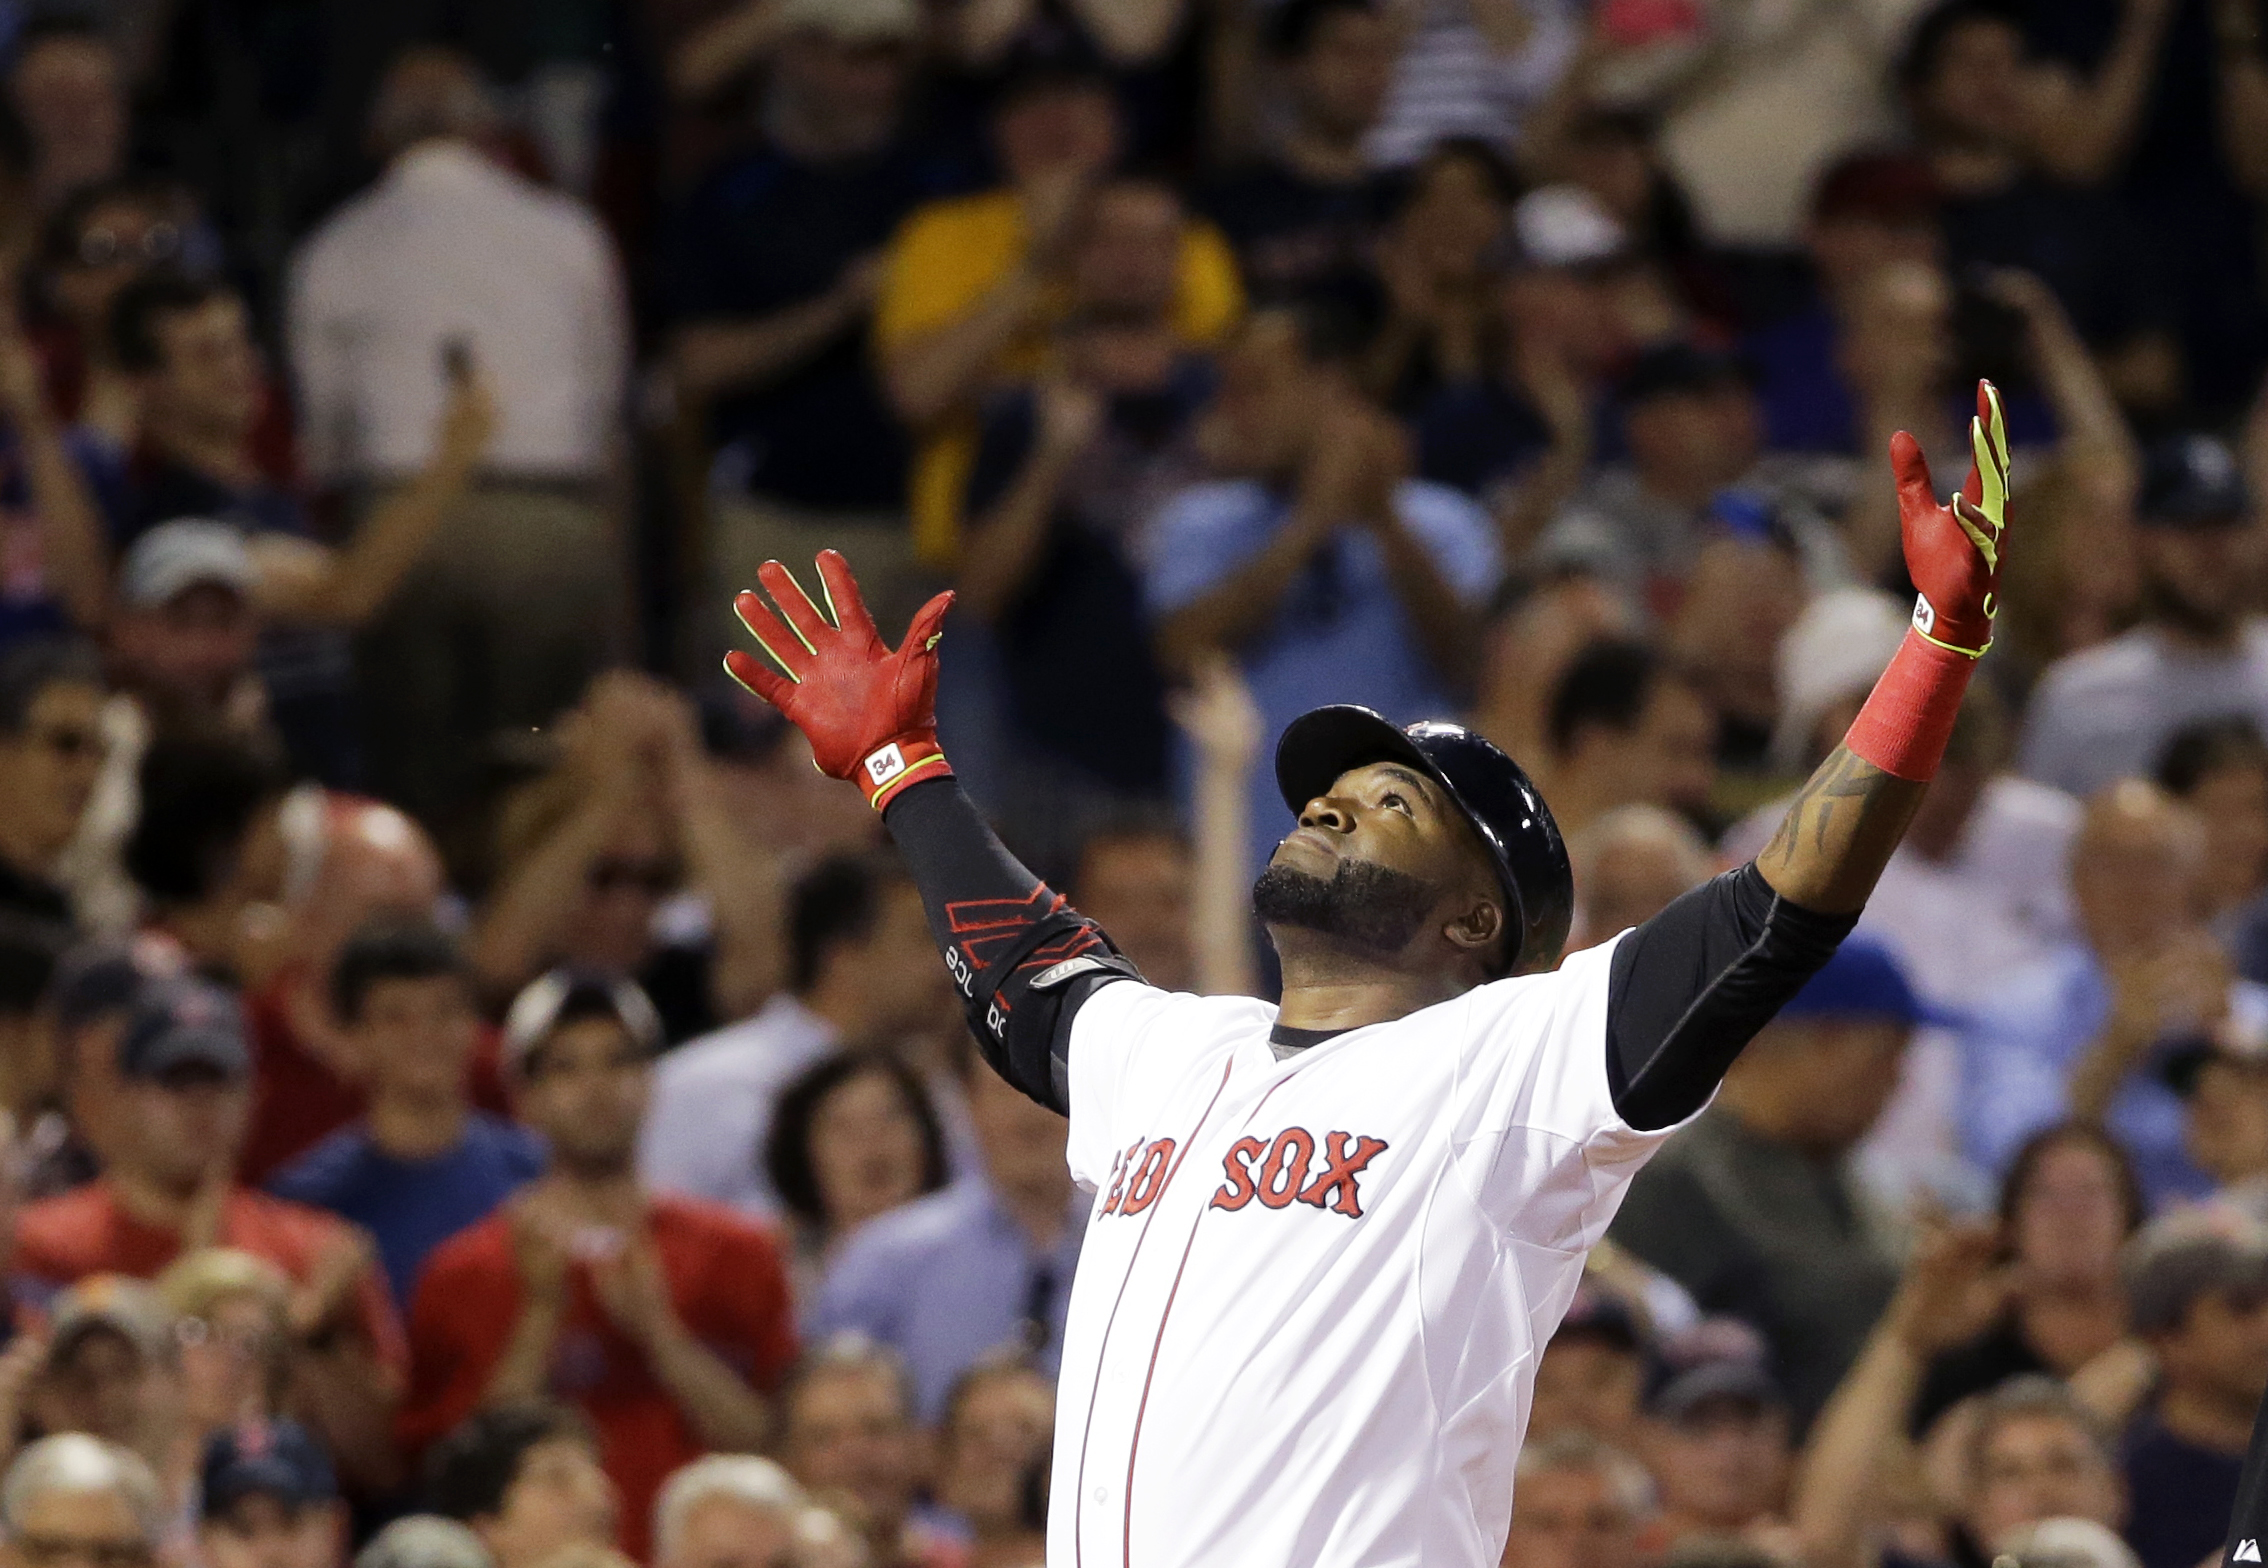 Boston Red Sox designated hitter David Ortiz reacts as he crosses the plate after hitting a two-run home run during the sixth inning of a baseball game against the Baltimore Orioles at Fenway Park, Wednesday, June 24, 2015, in Boston. (AP Photo/Elise Amen